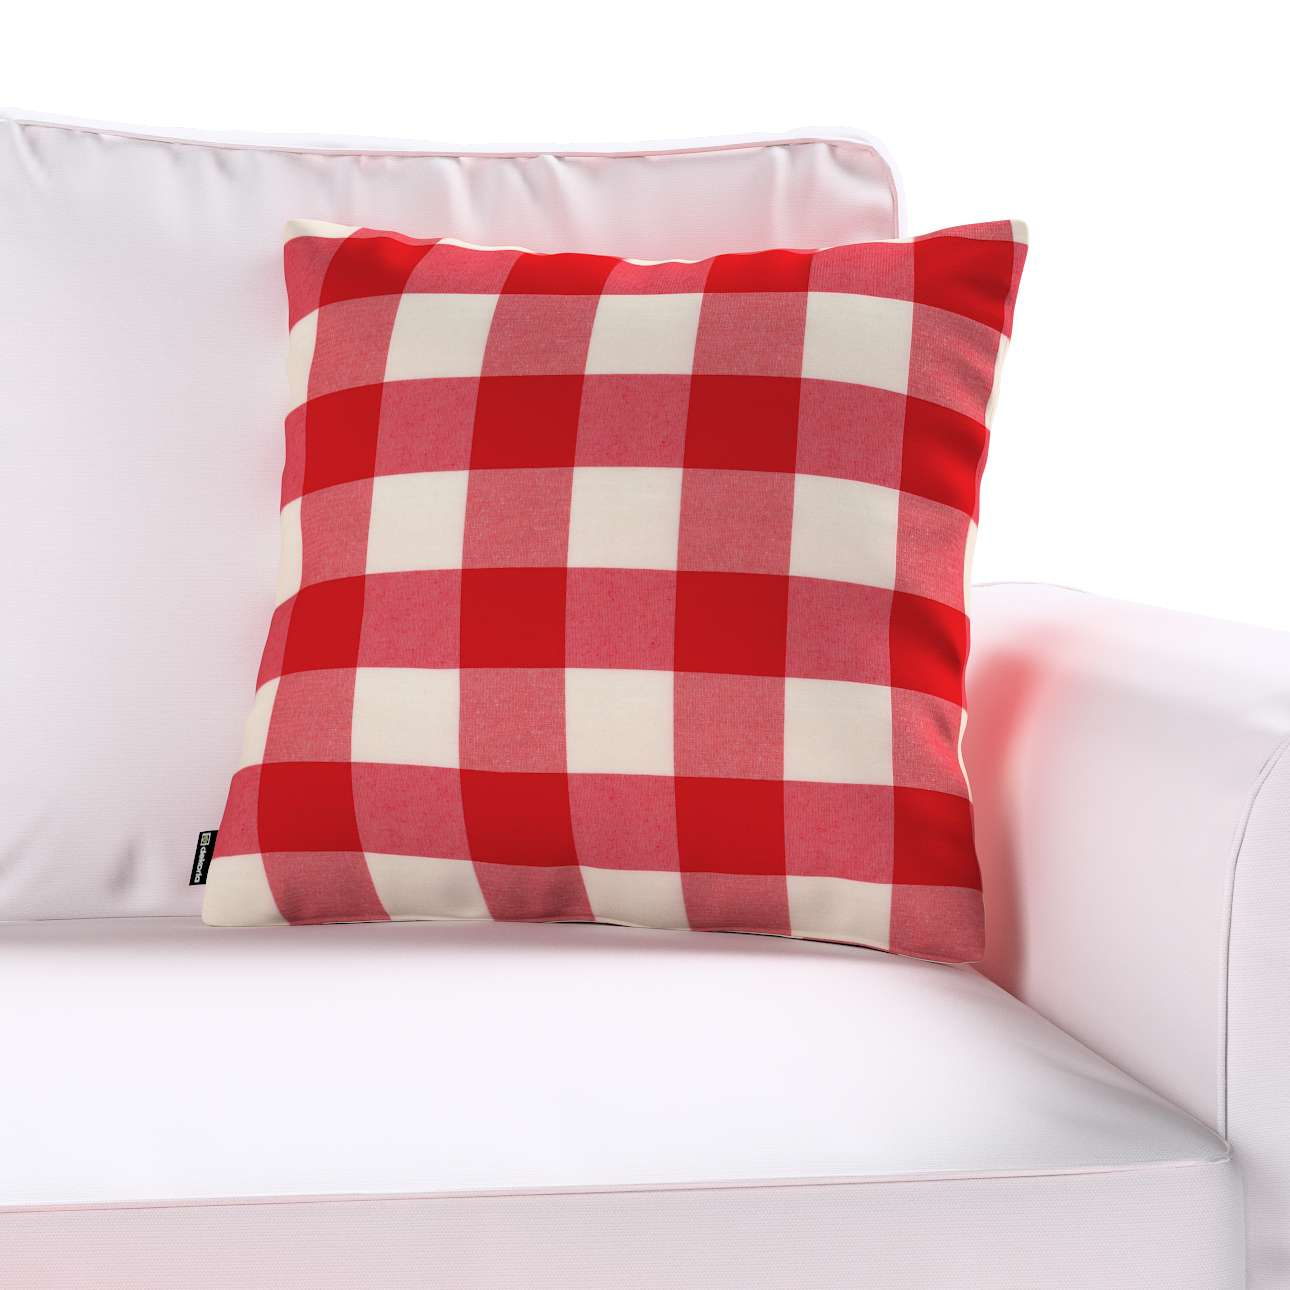 Kinga cushion cover 43 × 43 cm (17 × 17 inch) in collection Quadro, fabric: 136-18